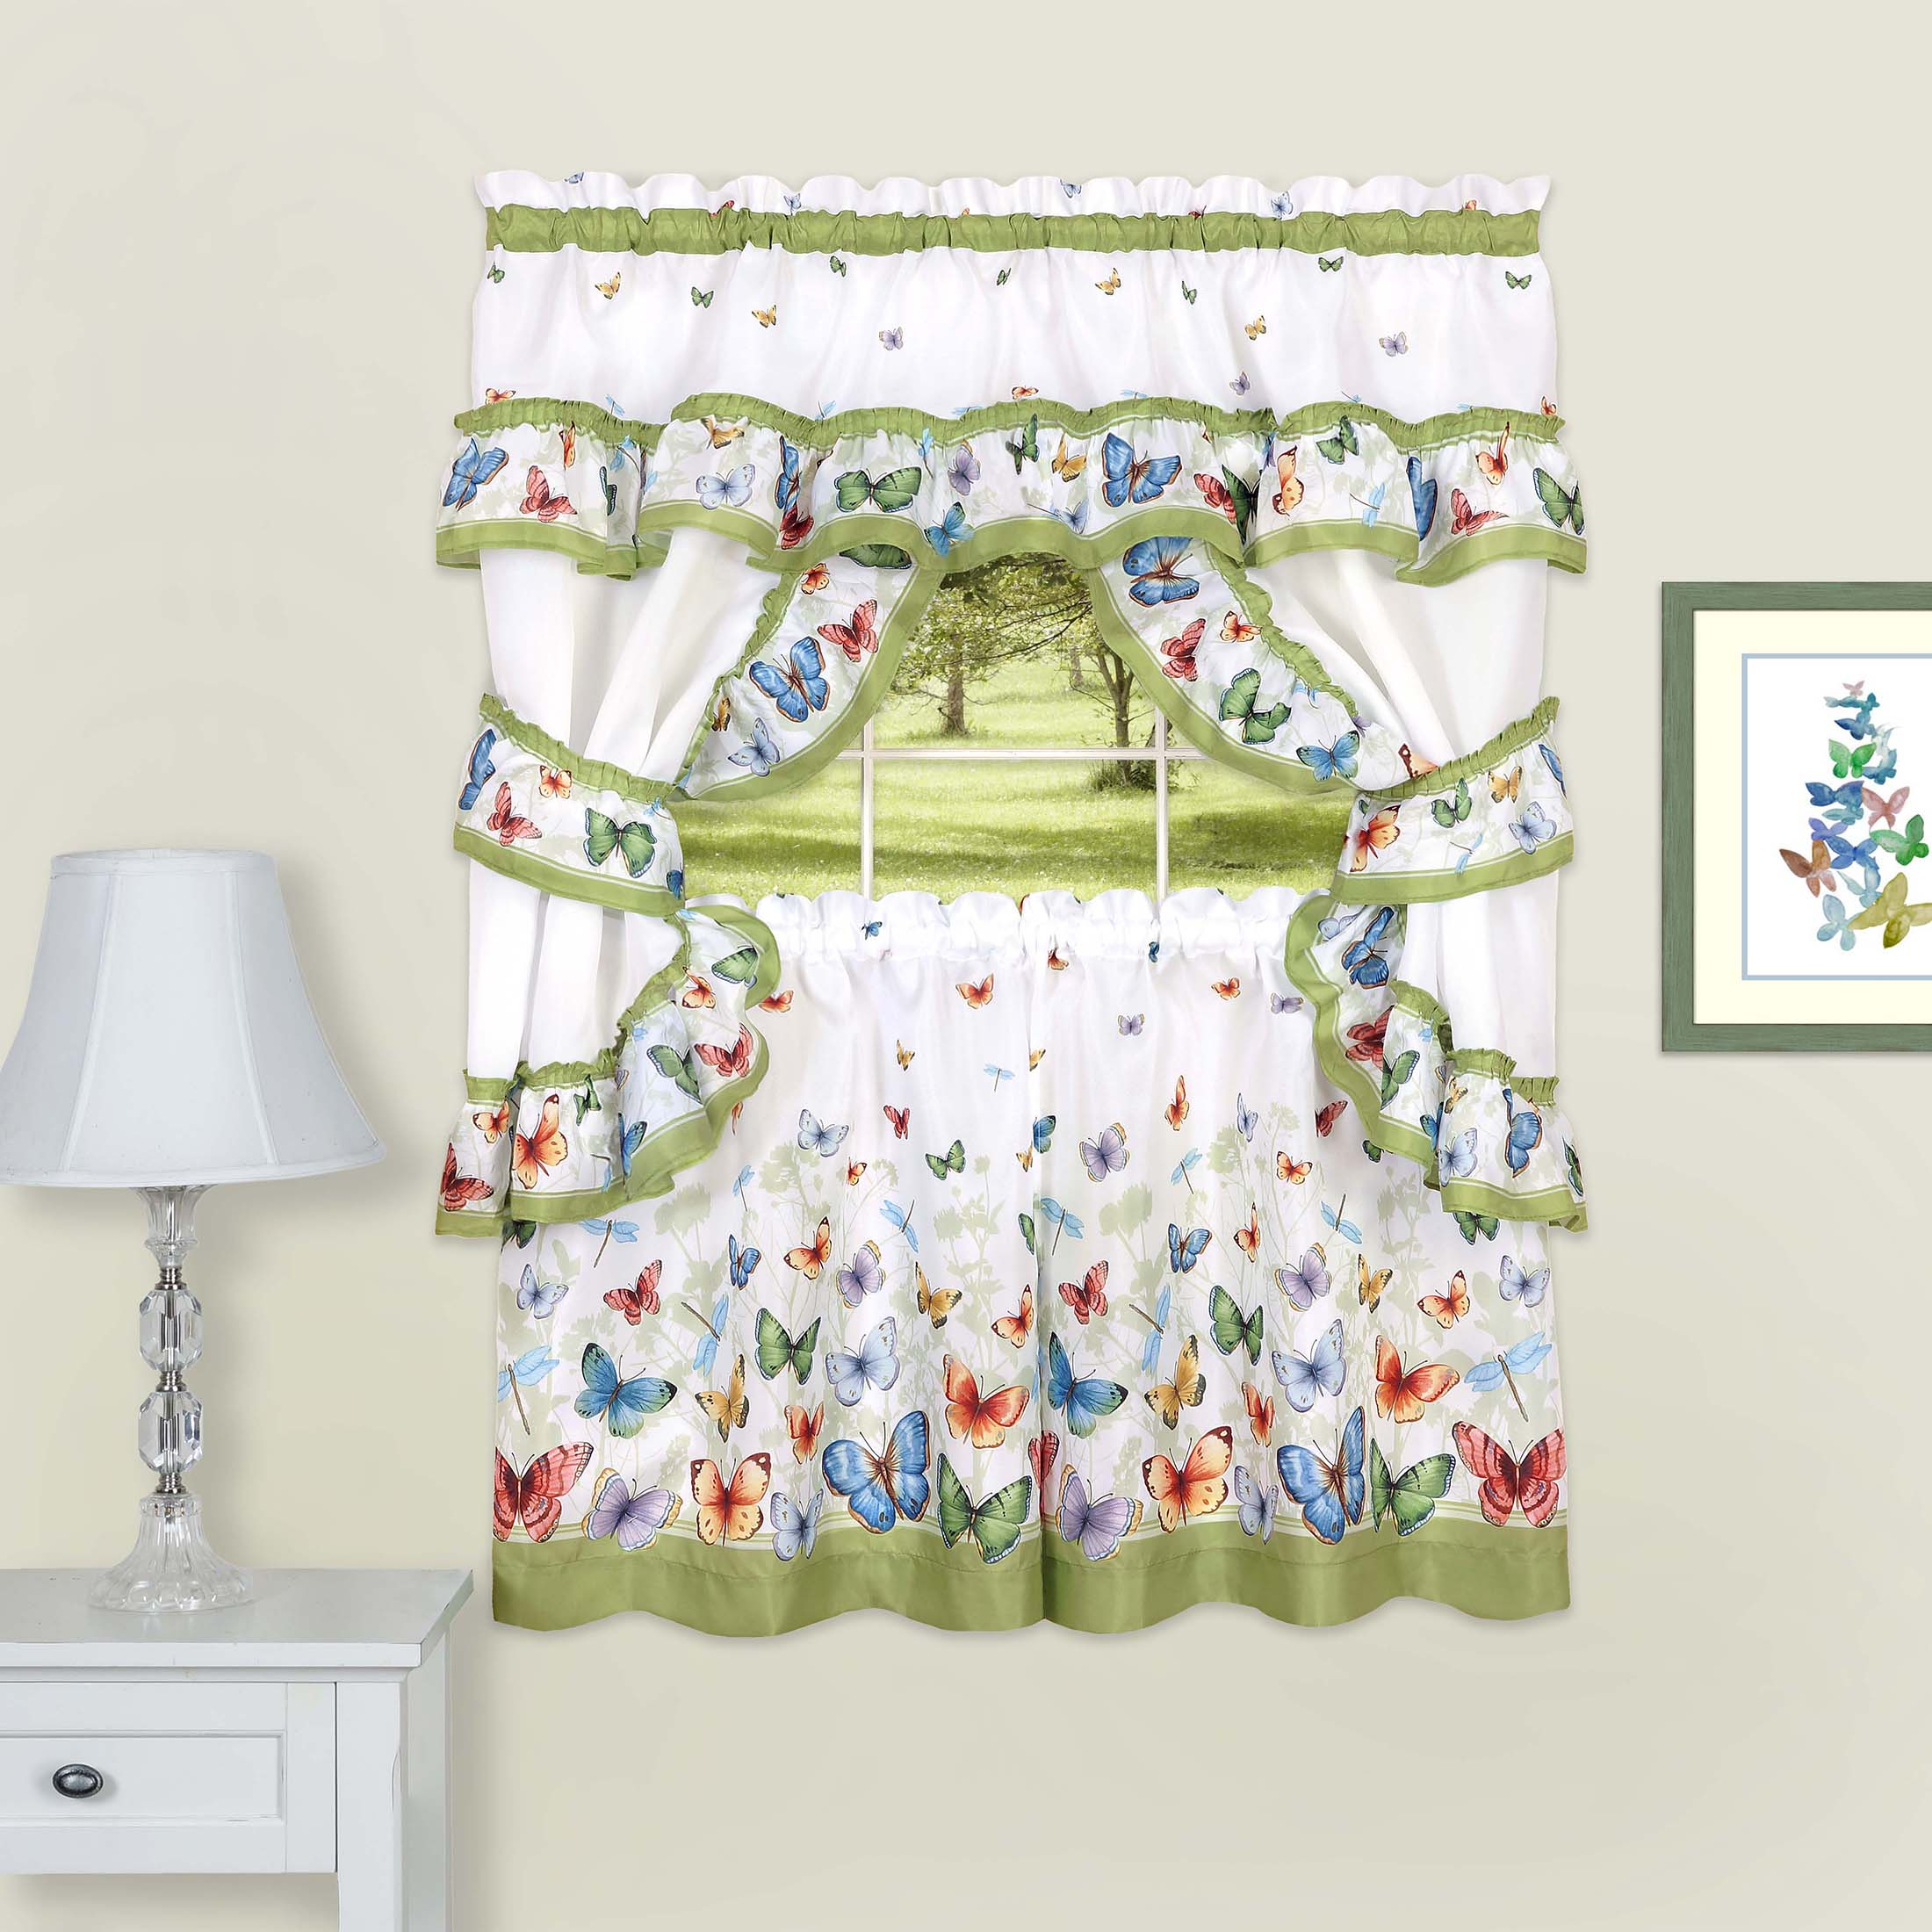 Details About 5C Window Kitchen Curtain Cottage Set, Butterflies, Tiers, Valance, Tiebacks Pertaining To Chateau Wines Cottage Kitchen Curtain Tier And Valance Sets (View 11 of 20)